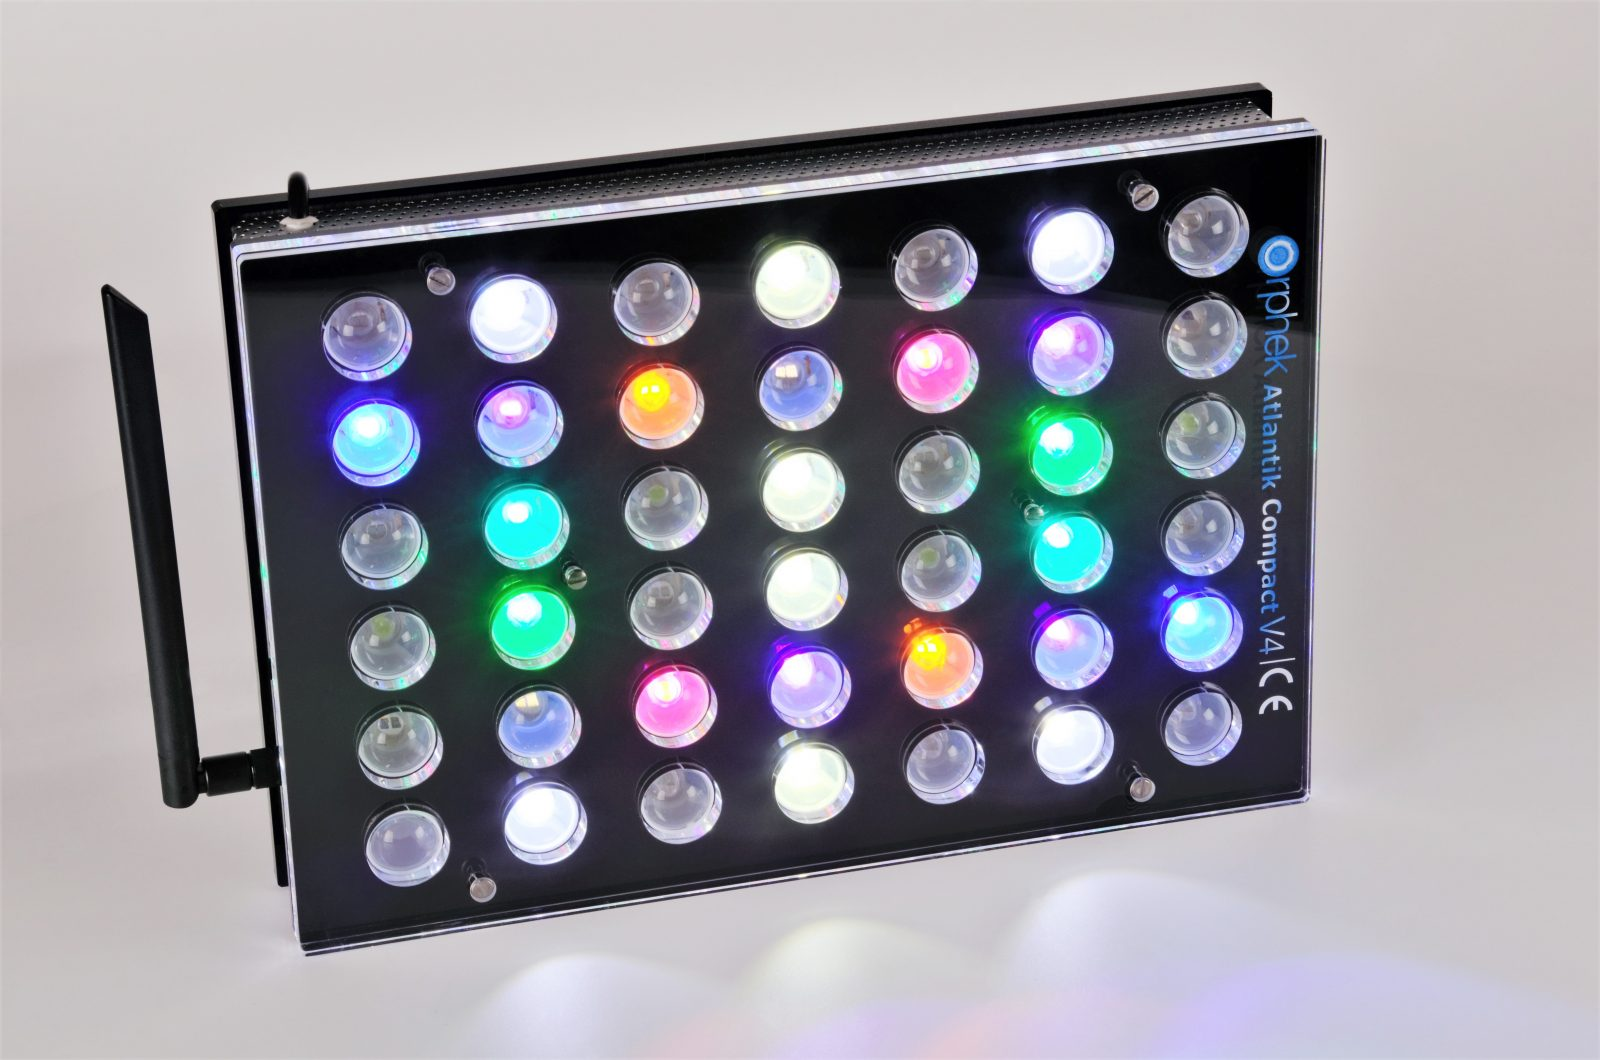 Orphek Aquarium LED Lighting ضوء Atlantik CompactV4 على القناة 1 + 3 + 4